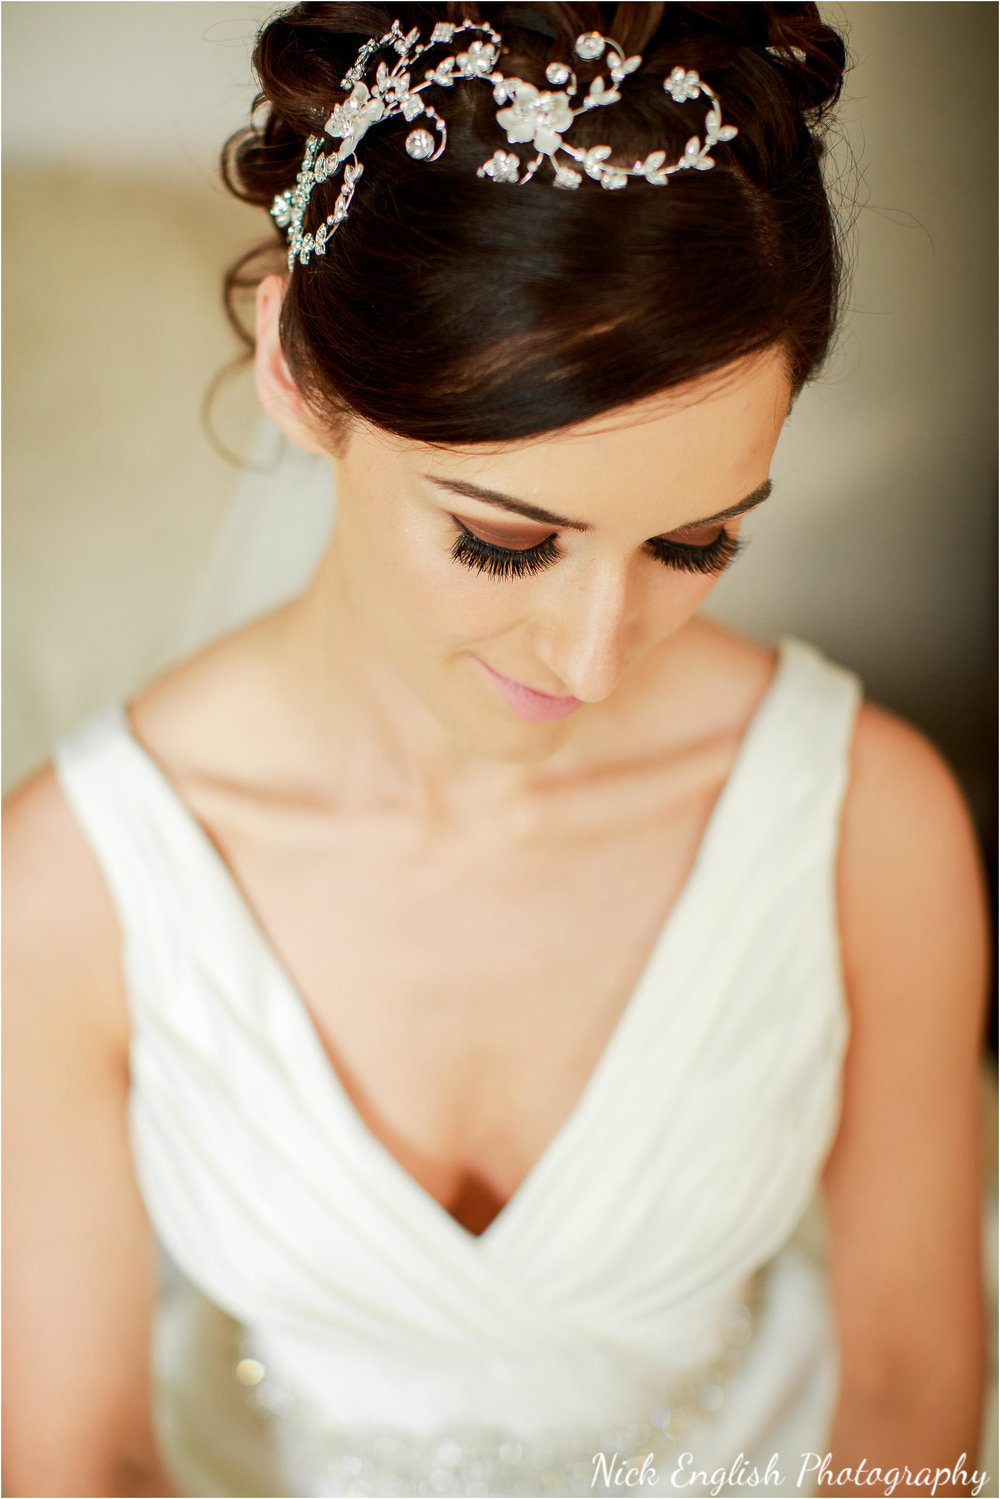 Emily David Wedding Photographs at Barton Grange Preston by Nick English Photography 33jpg.jpeg